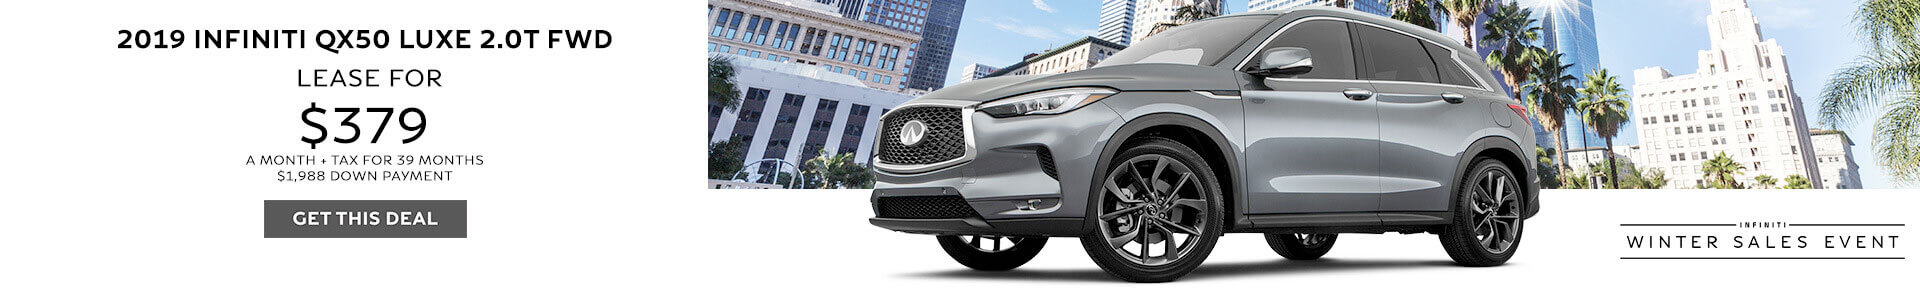 QX50 Lease for $379 per month